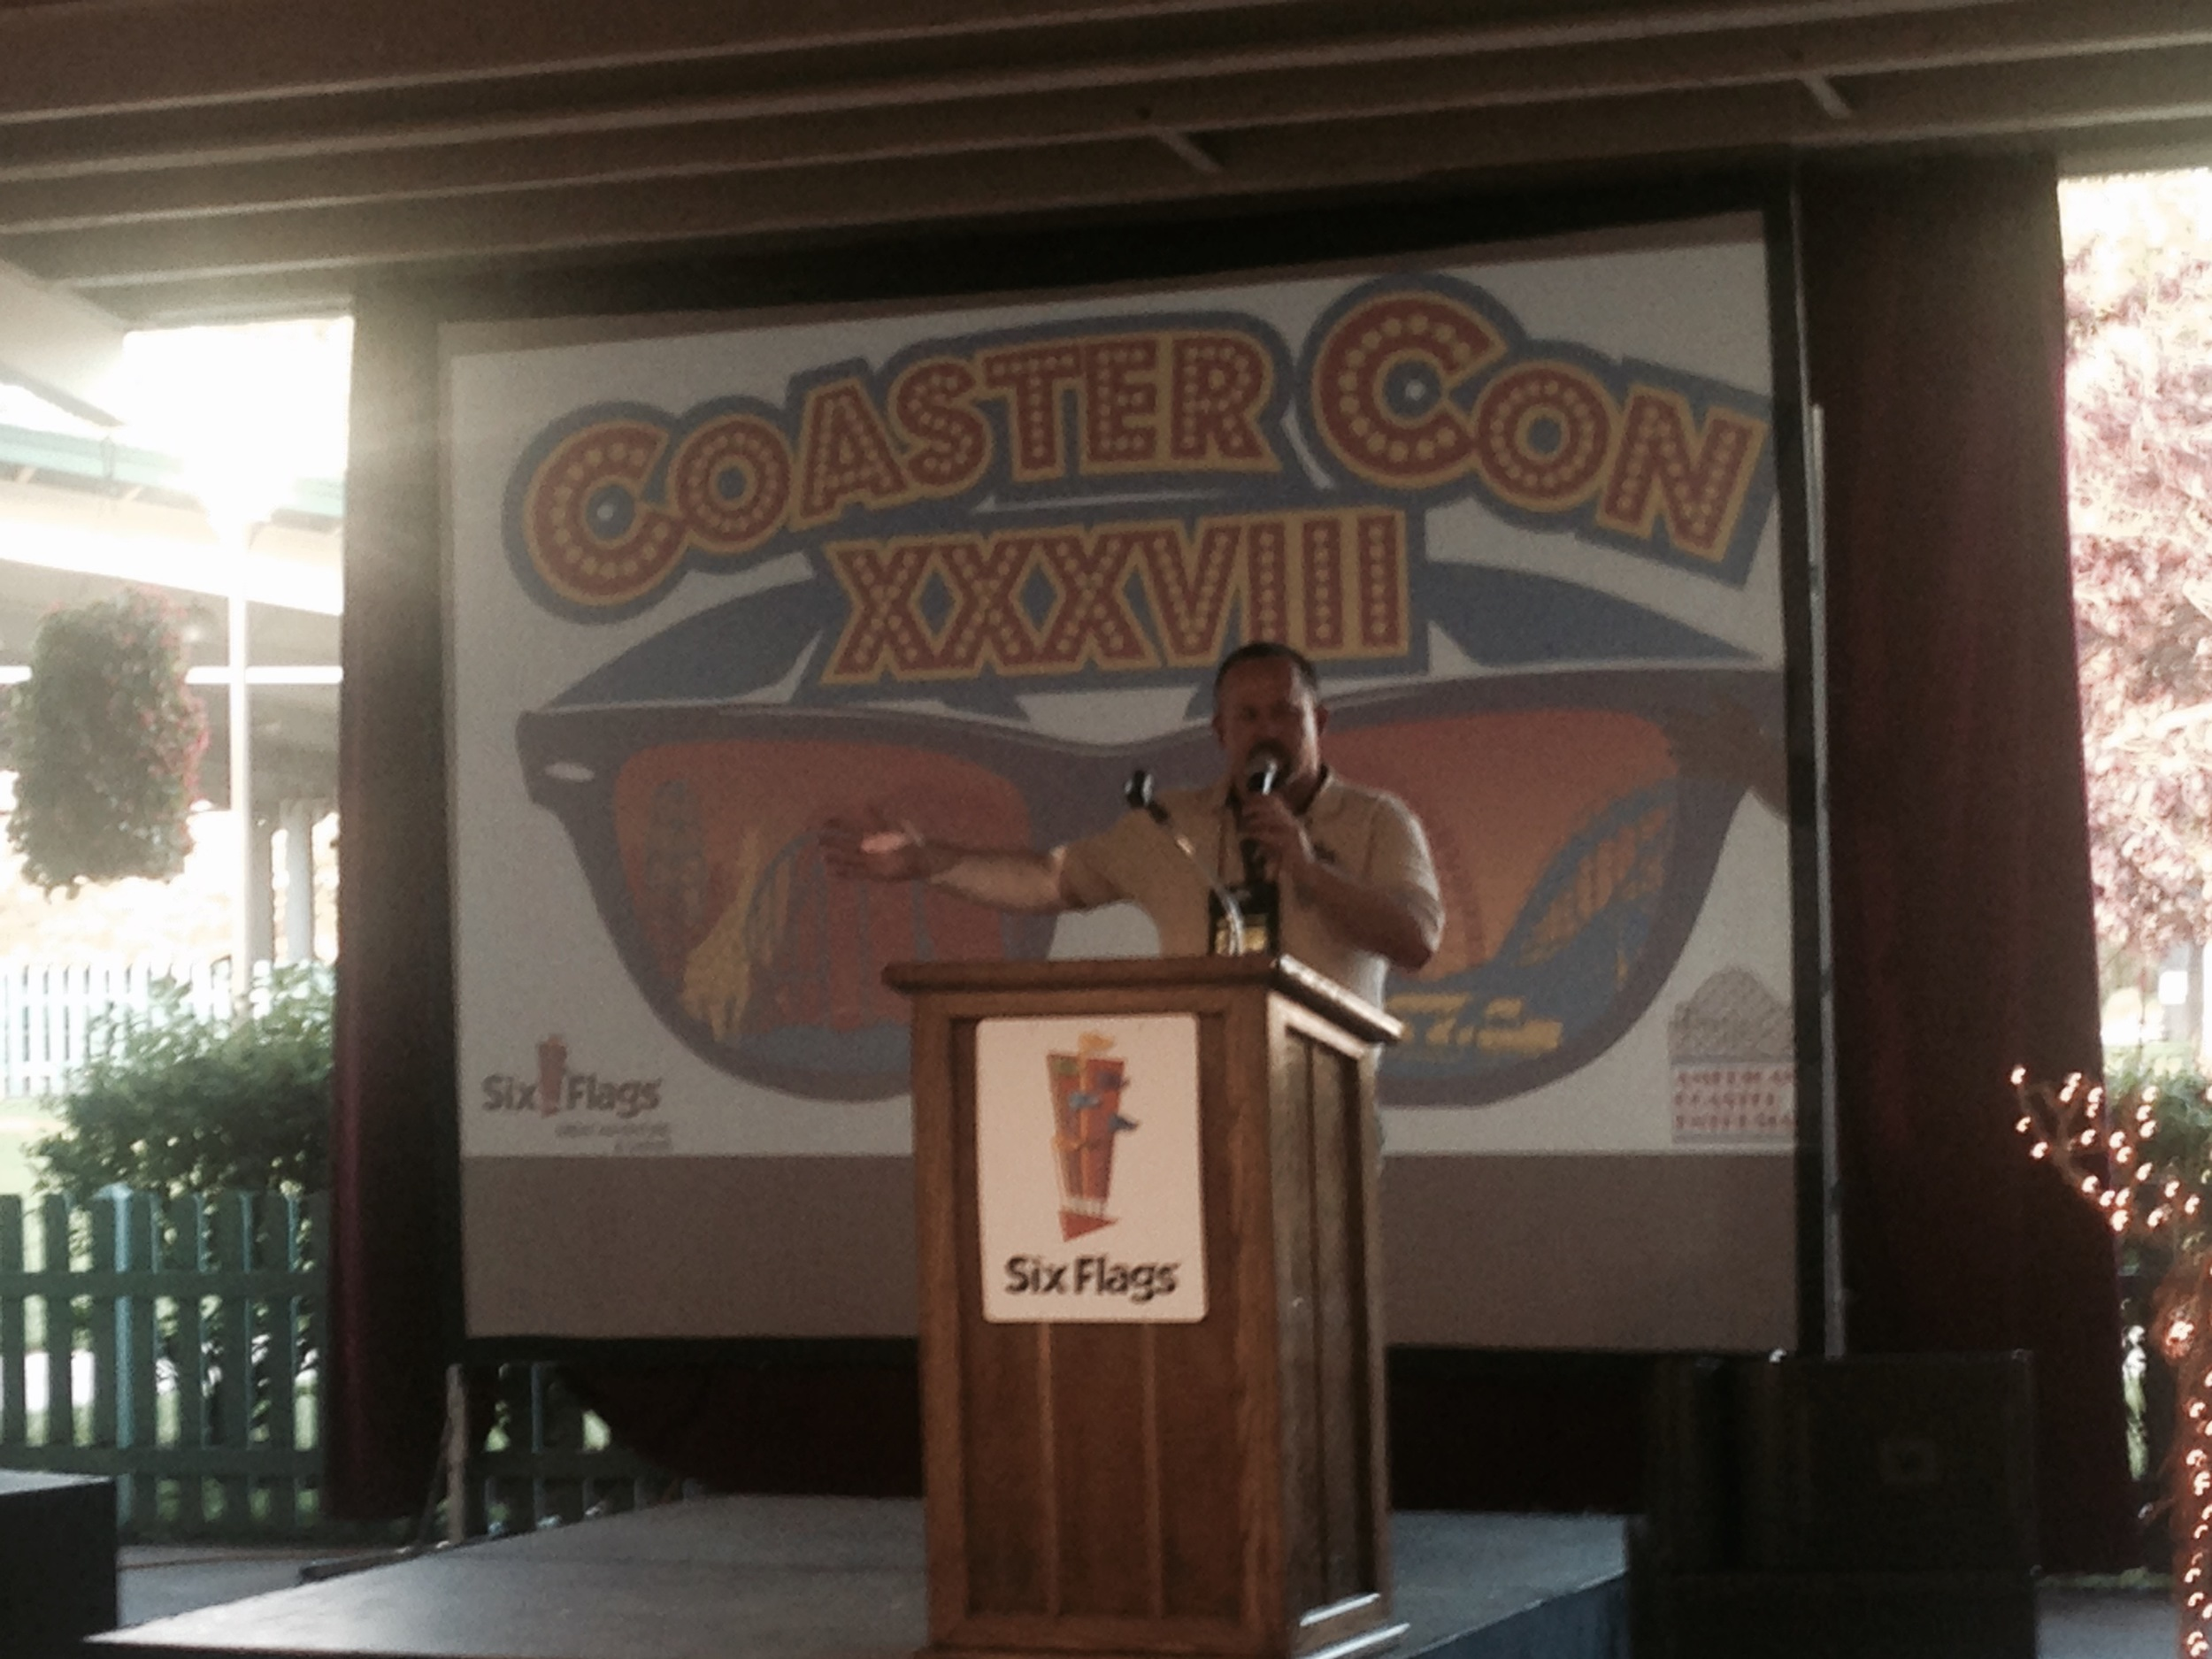 ACE President Jerry Willard welcomes the Con attendees at Six Flags Great Adventure